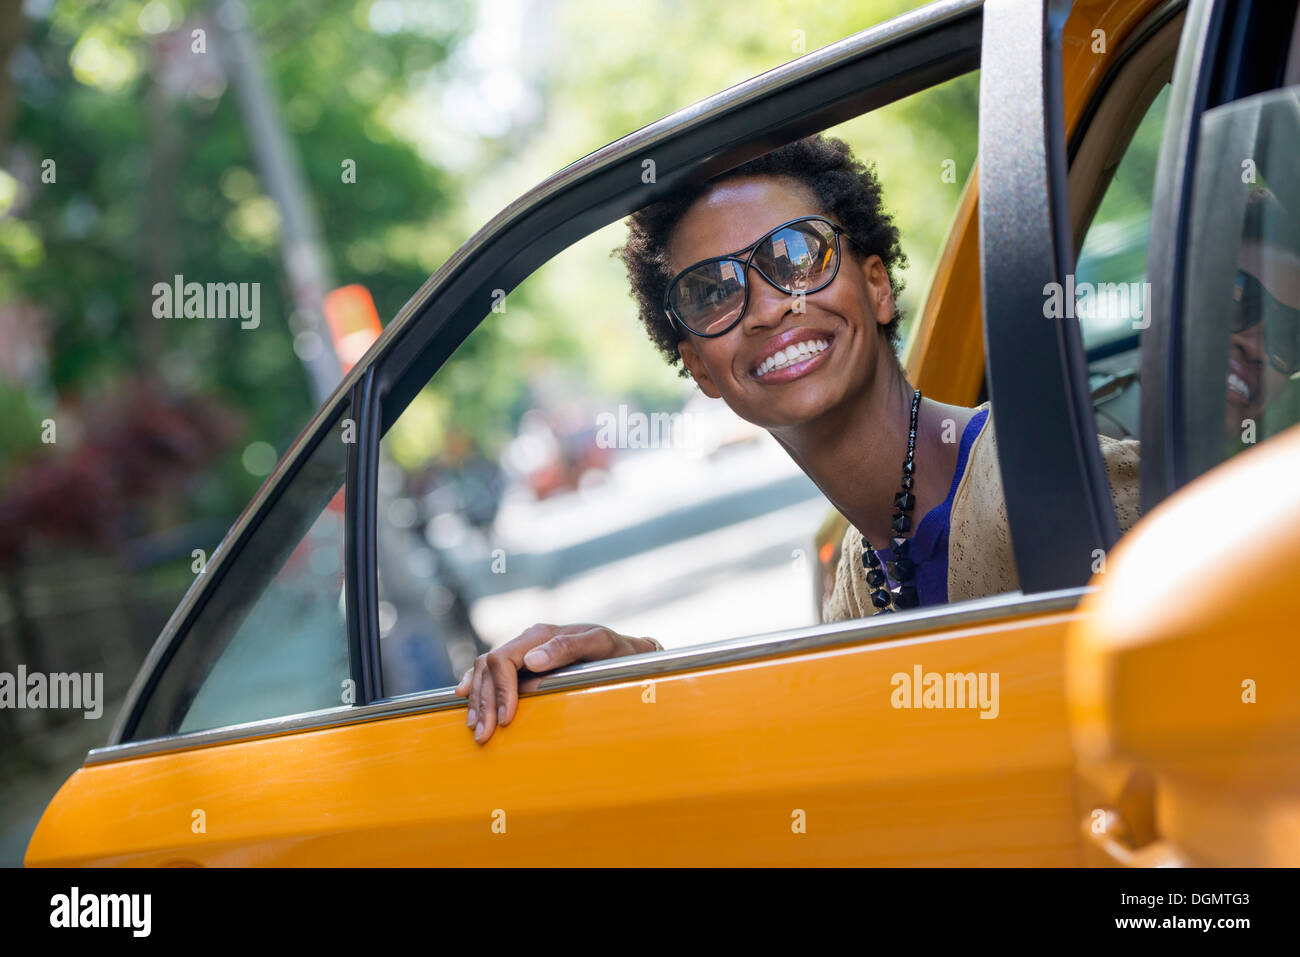 A woman getting out of the rear passenger seat of a yellow cab. Stock Photo